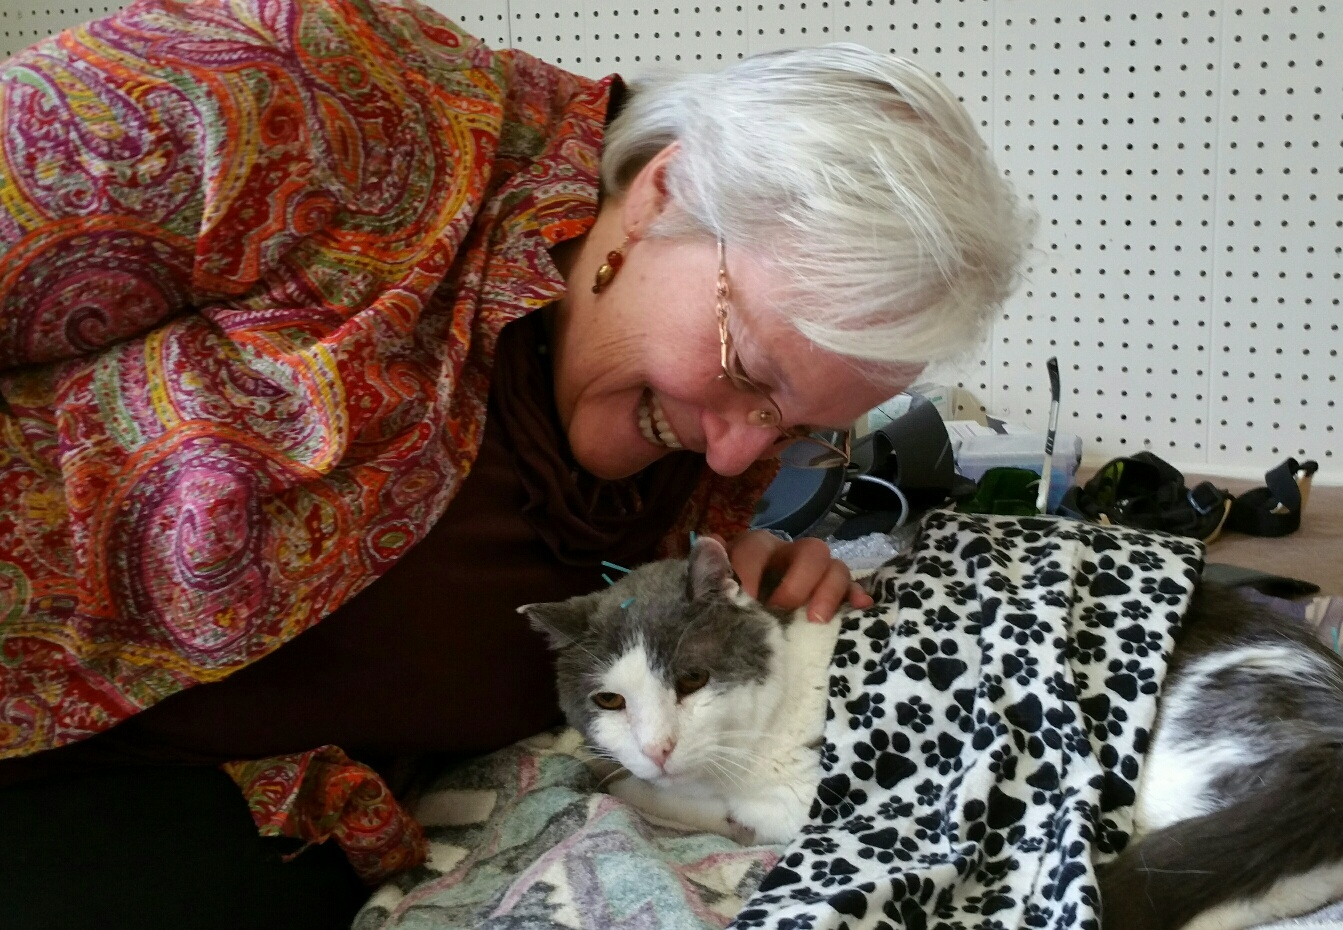 Dr. Verna giving Gray Kitty accupuncture and Beemer (electromagnetic therapy)